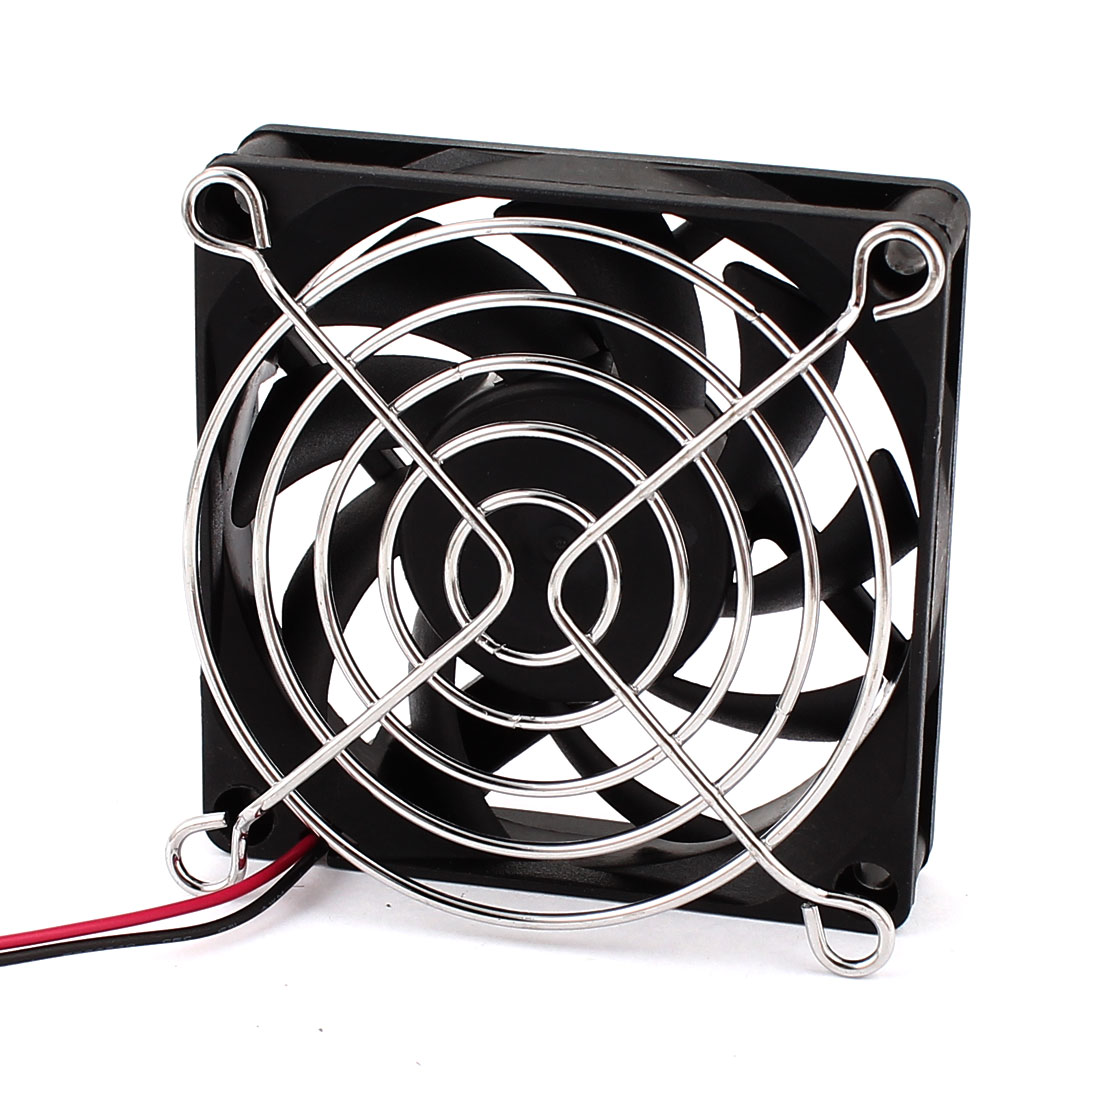 70mm x 15mm 9 Flabellums DC 24V Brushless Cooling Fan Black w Metal Grill